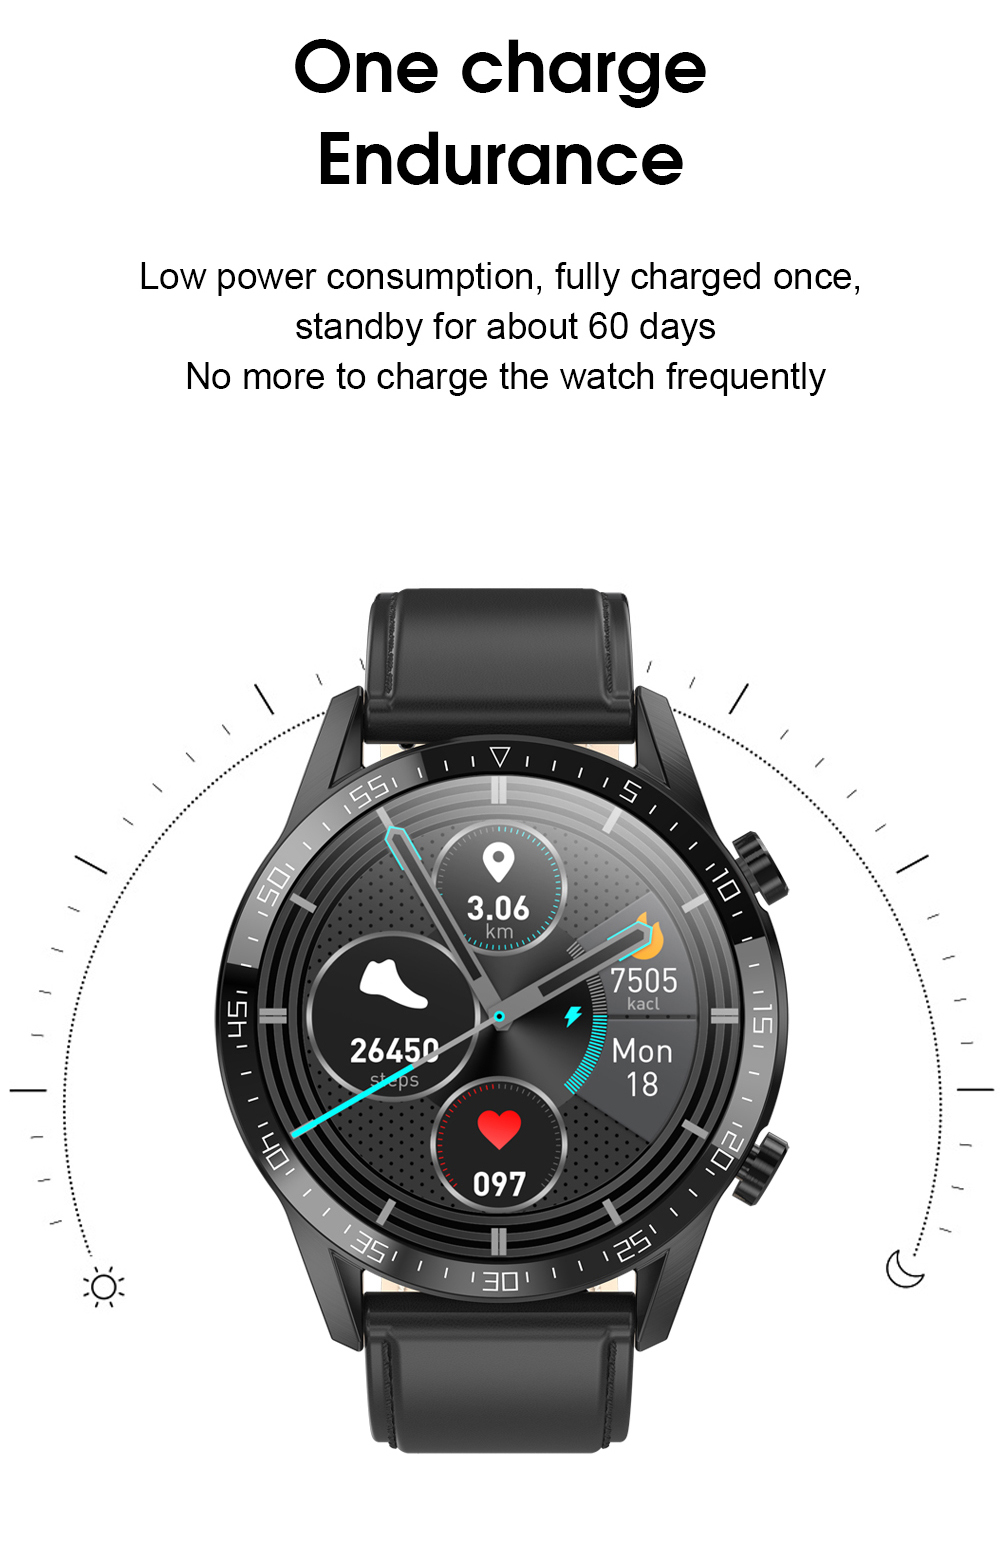 H336eb837a68f4cf0972b13fd1b30eb44G Timewolf IP68 Smart Watch Men Android 2020 Full Touch Smartwatch Men Women Smart Watch For Huawei Xiaomi Apple IOS Android Phone